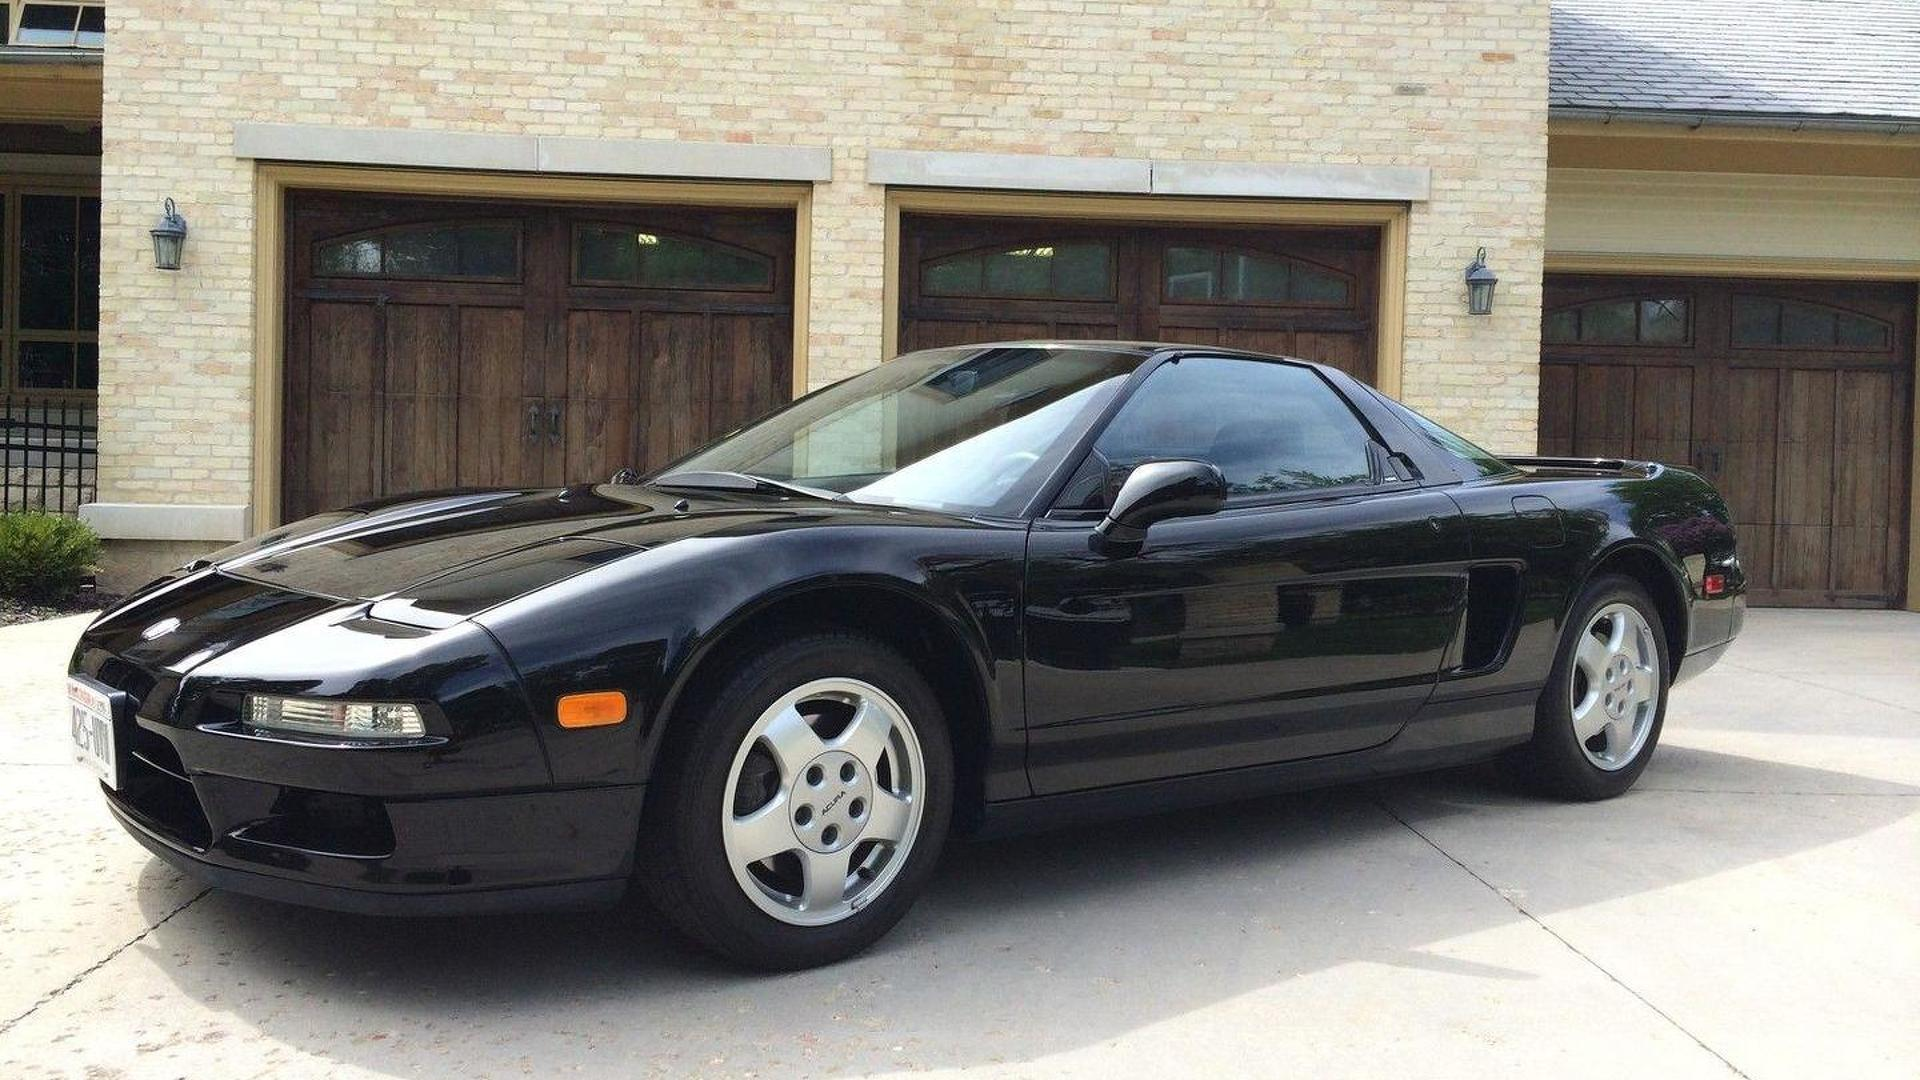 Mint Acura NSX Looking For Its New Owner In EBay - Acura nsx for sale by owner